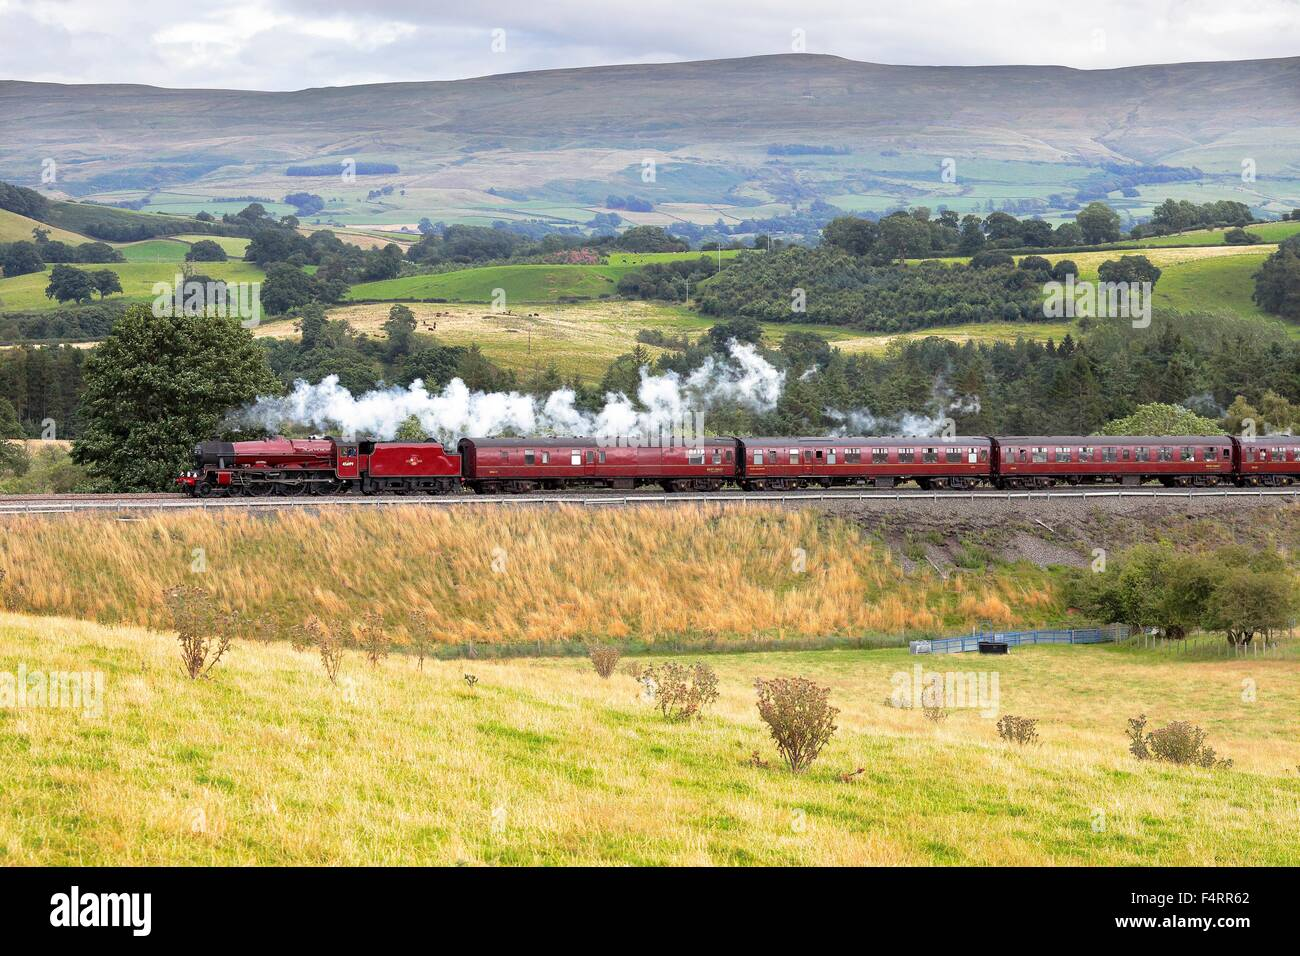 Steam locomotive LMS Jubilee Class 45699 Galatea on the Settle to Carlisle Railway Line near Lazonby, Eden Valley, - Stock Image